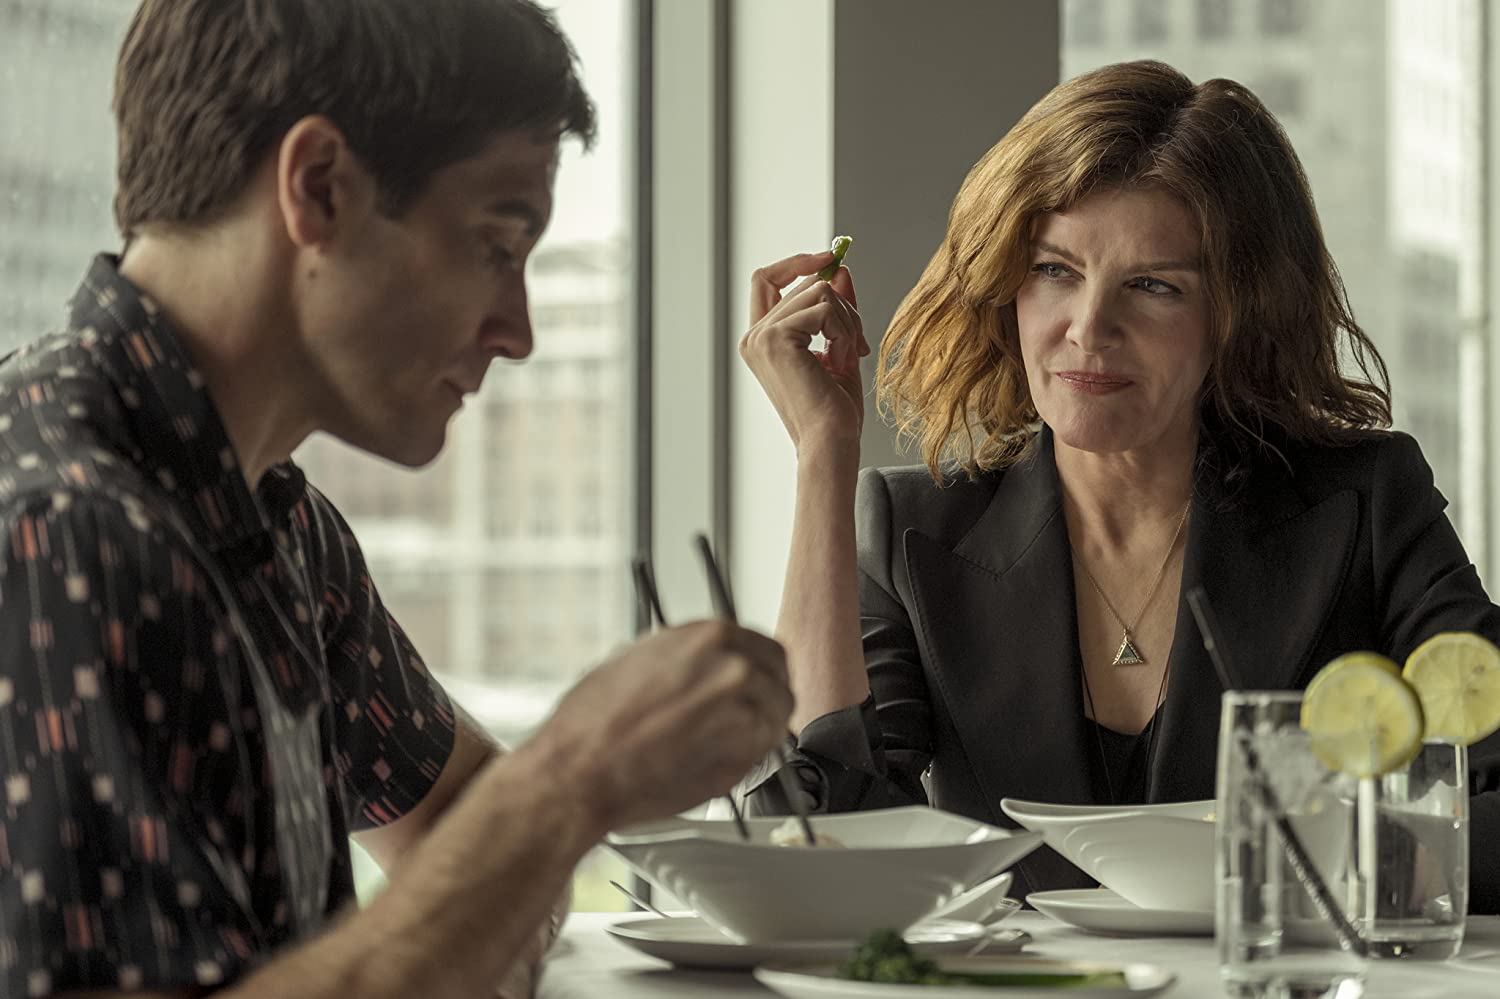 Rene Russo and Jake Gyllenhaal in Velvet Buzzsaw (2019)